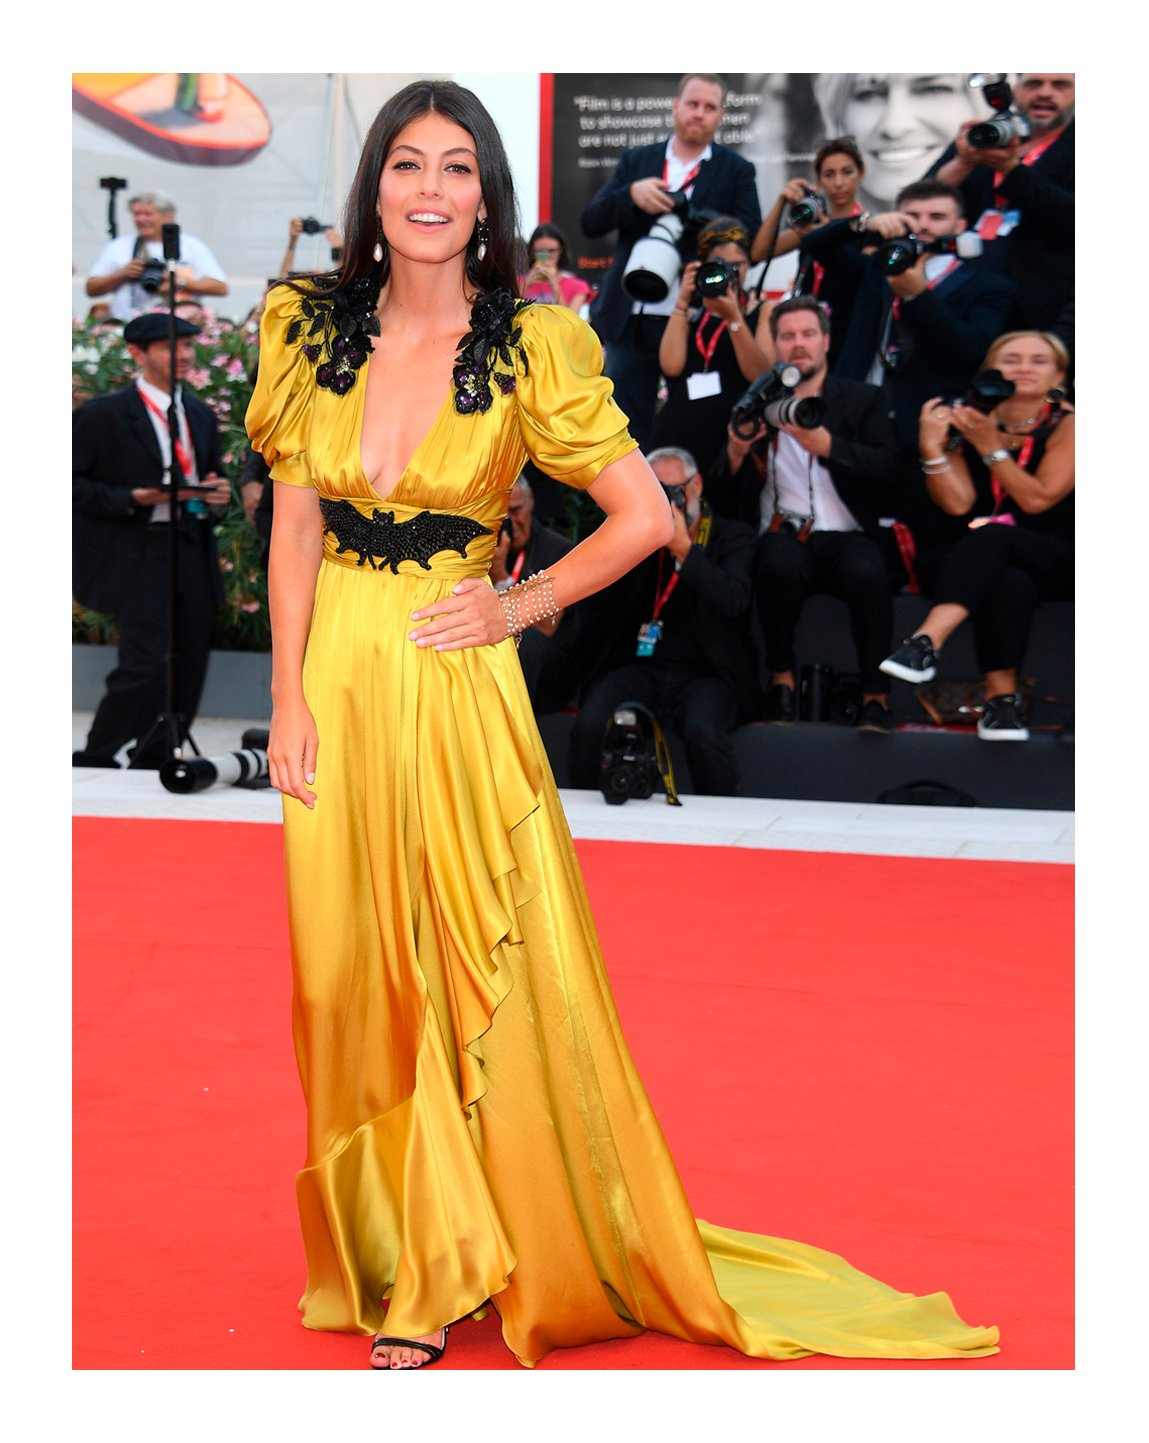 To the screening of 'Marriage Story' during the 76th Venice Film Festival, #AlessandraMastronardi wore a silk V-neck embroidered gown with asymmetric ruffle detail and leather high heel sandals from #GucciSS19 by #AlessandroMichele. #GucciJewelry #Venezia76 @labiennale https://t.co/6EwclqMpWO